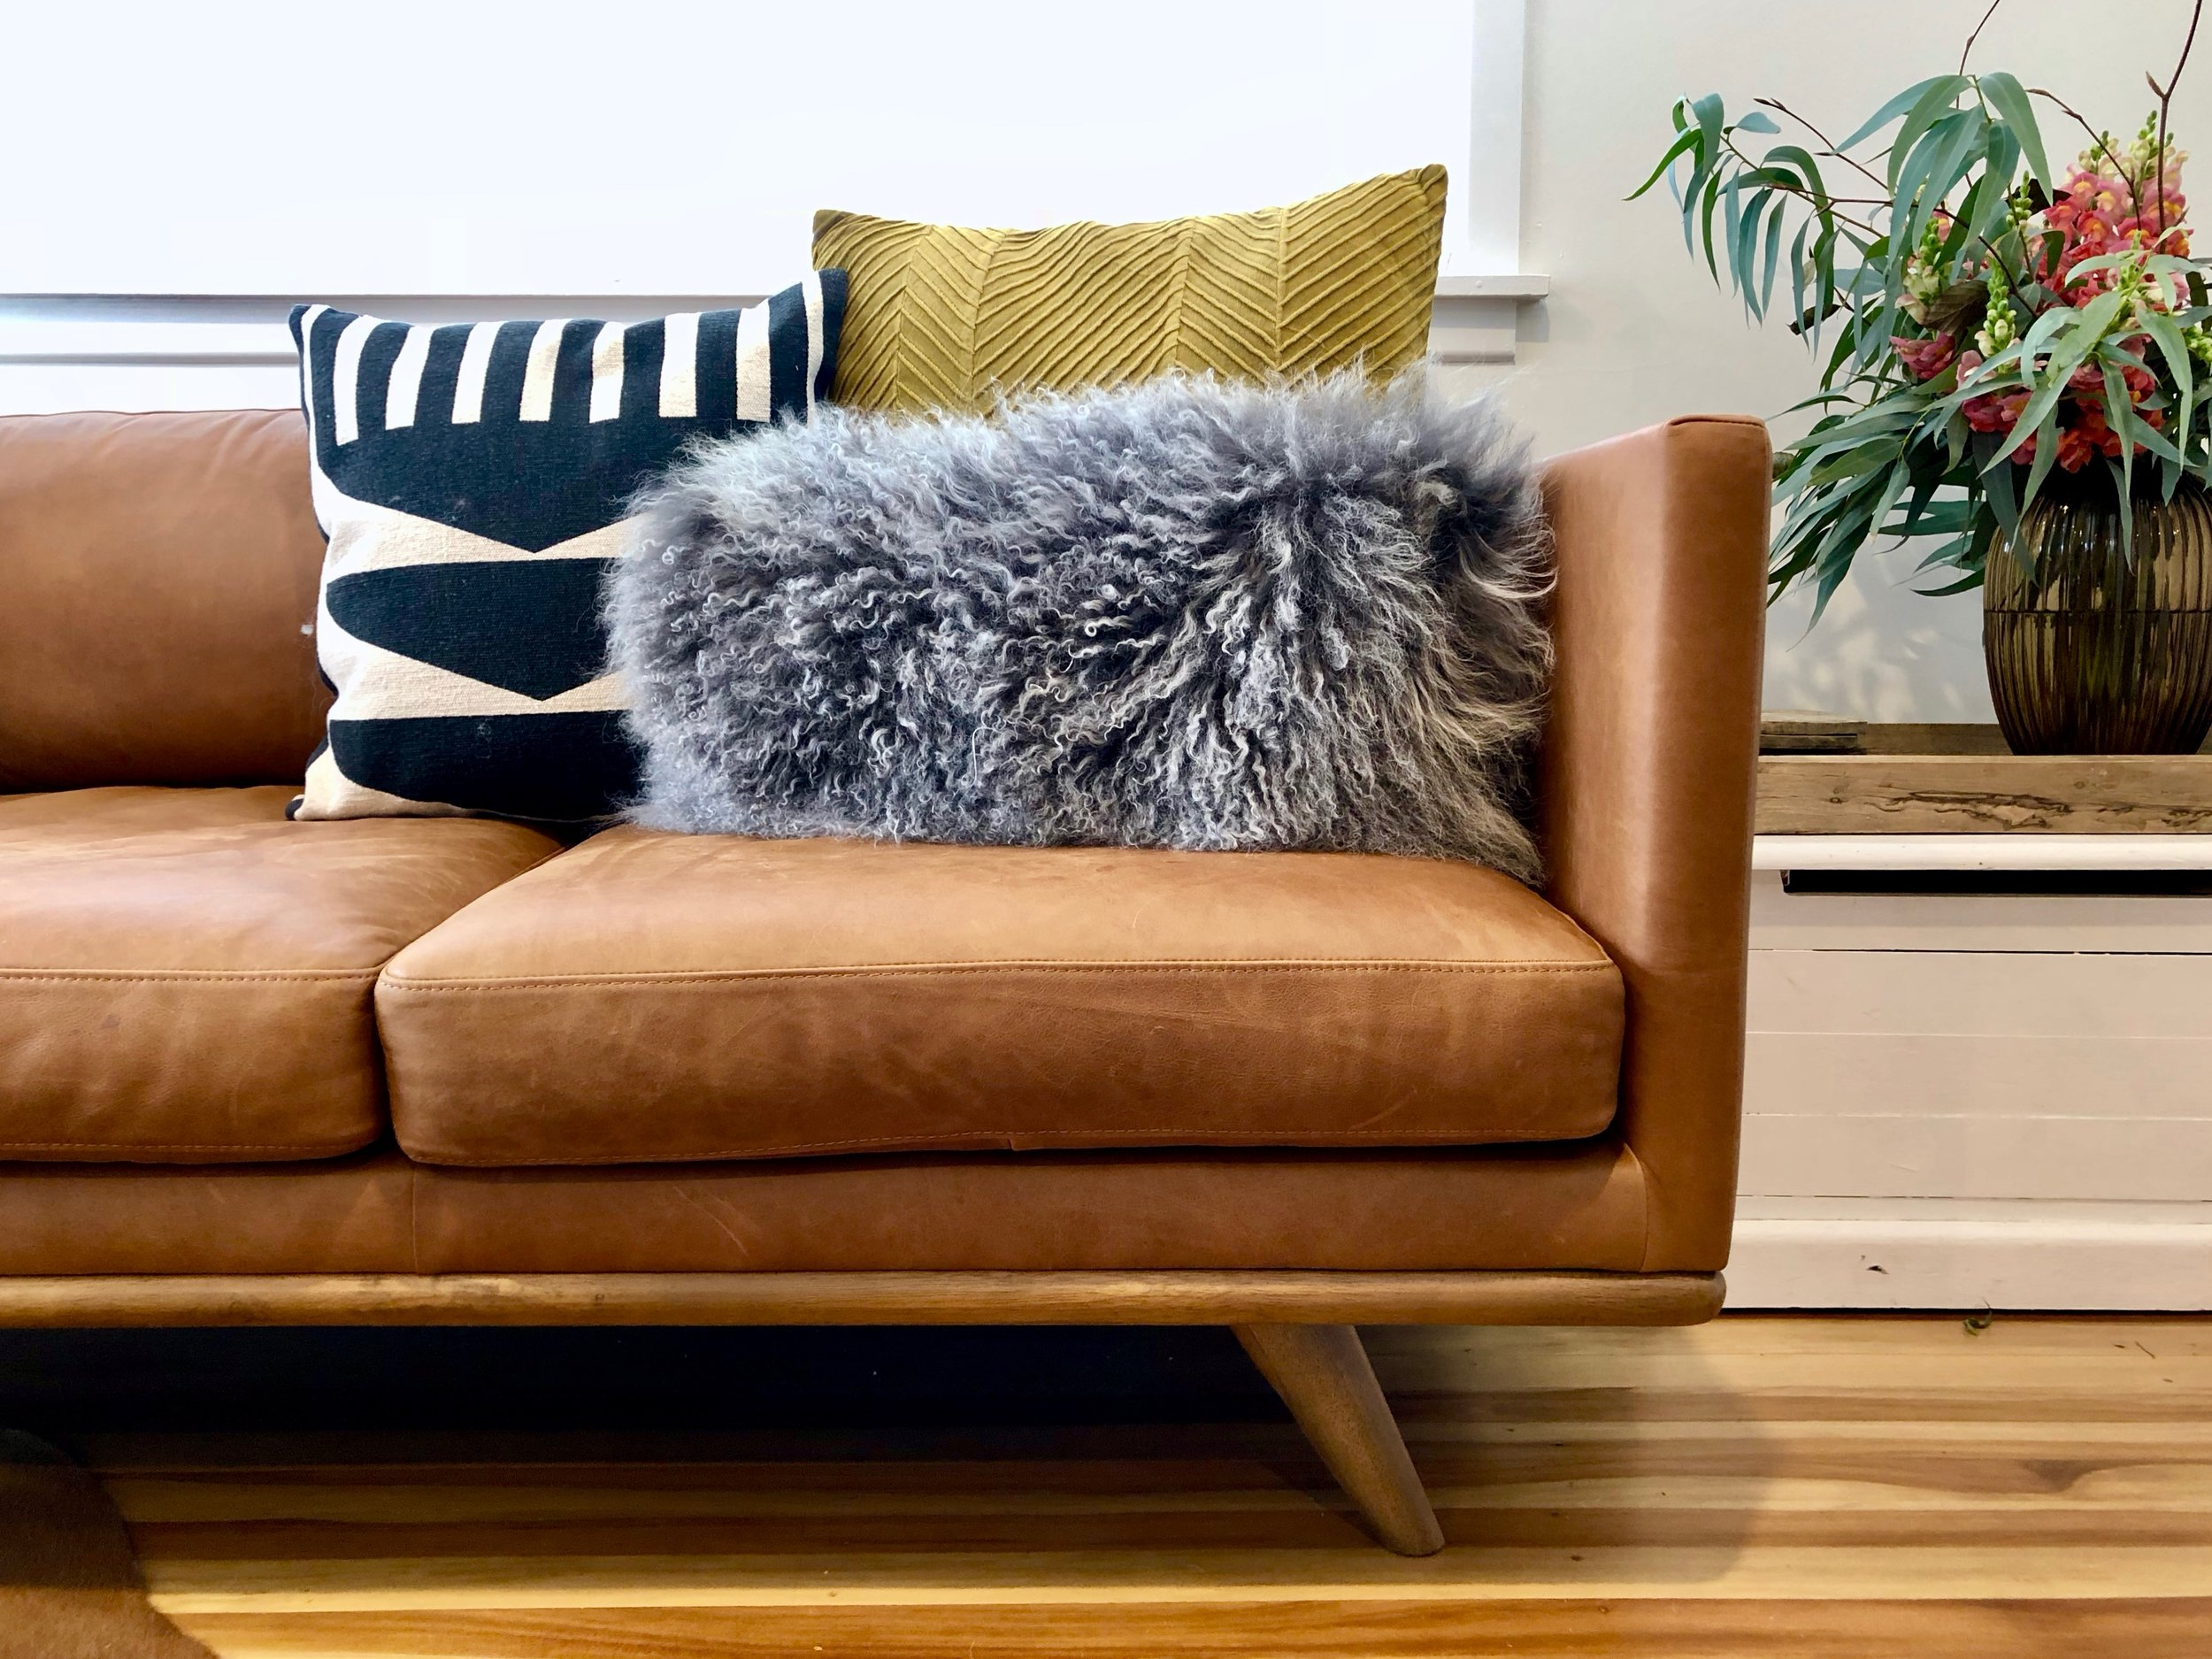 Pearson and Projects Living Room Reveal Nood Cushions Leather Brown Couch.jpg